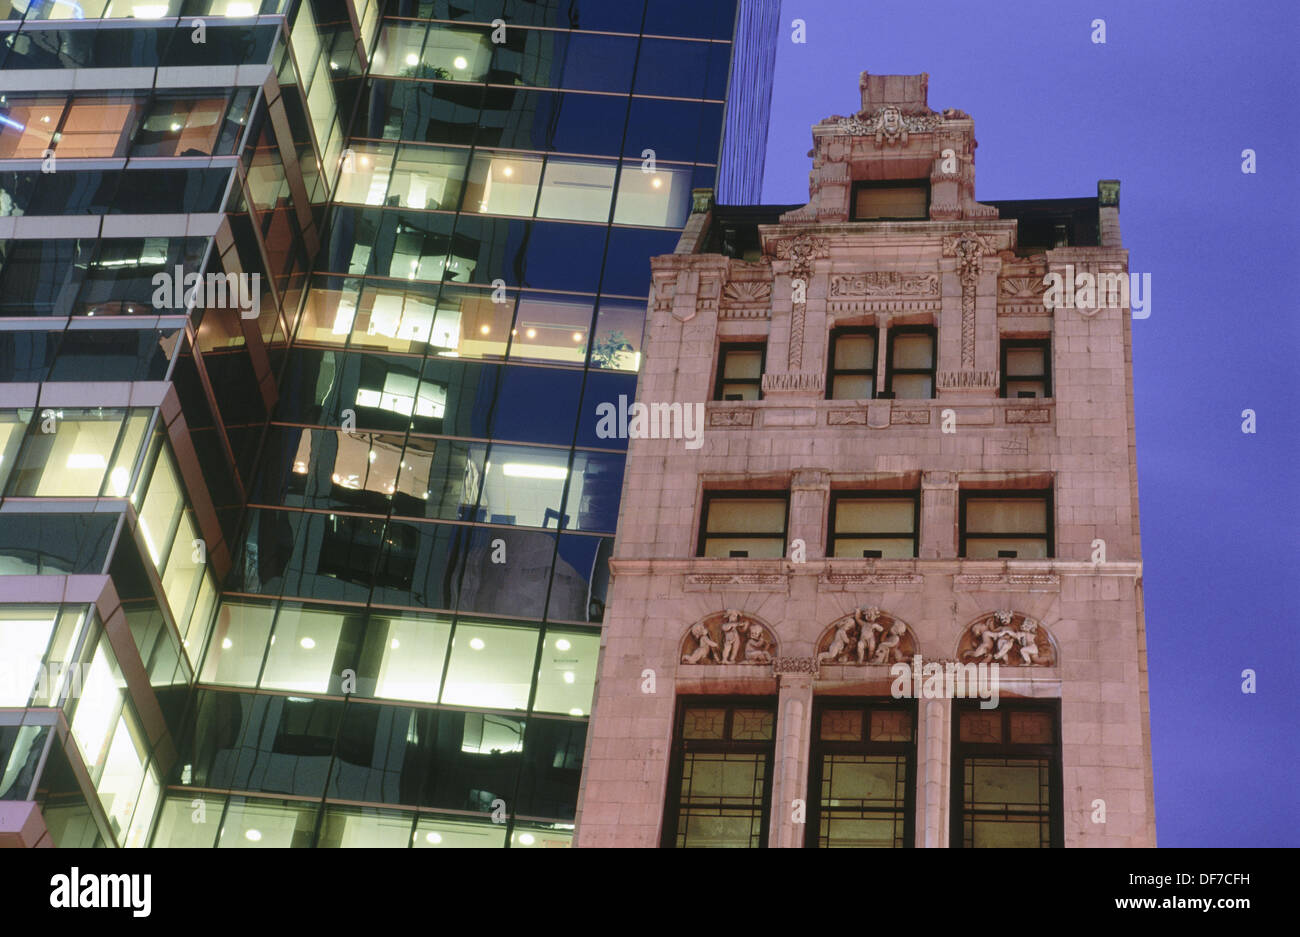 Old and new buildings on 42nd Street. New York City, USA - Stock Image